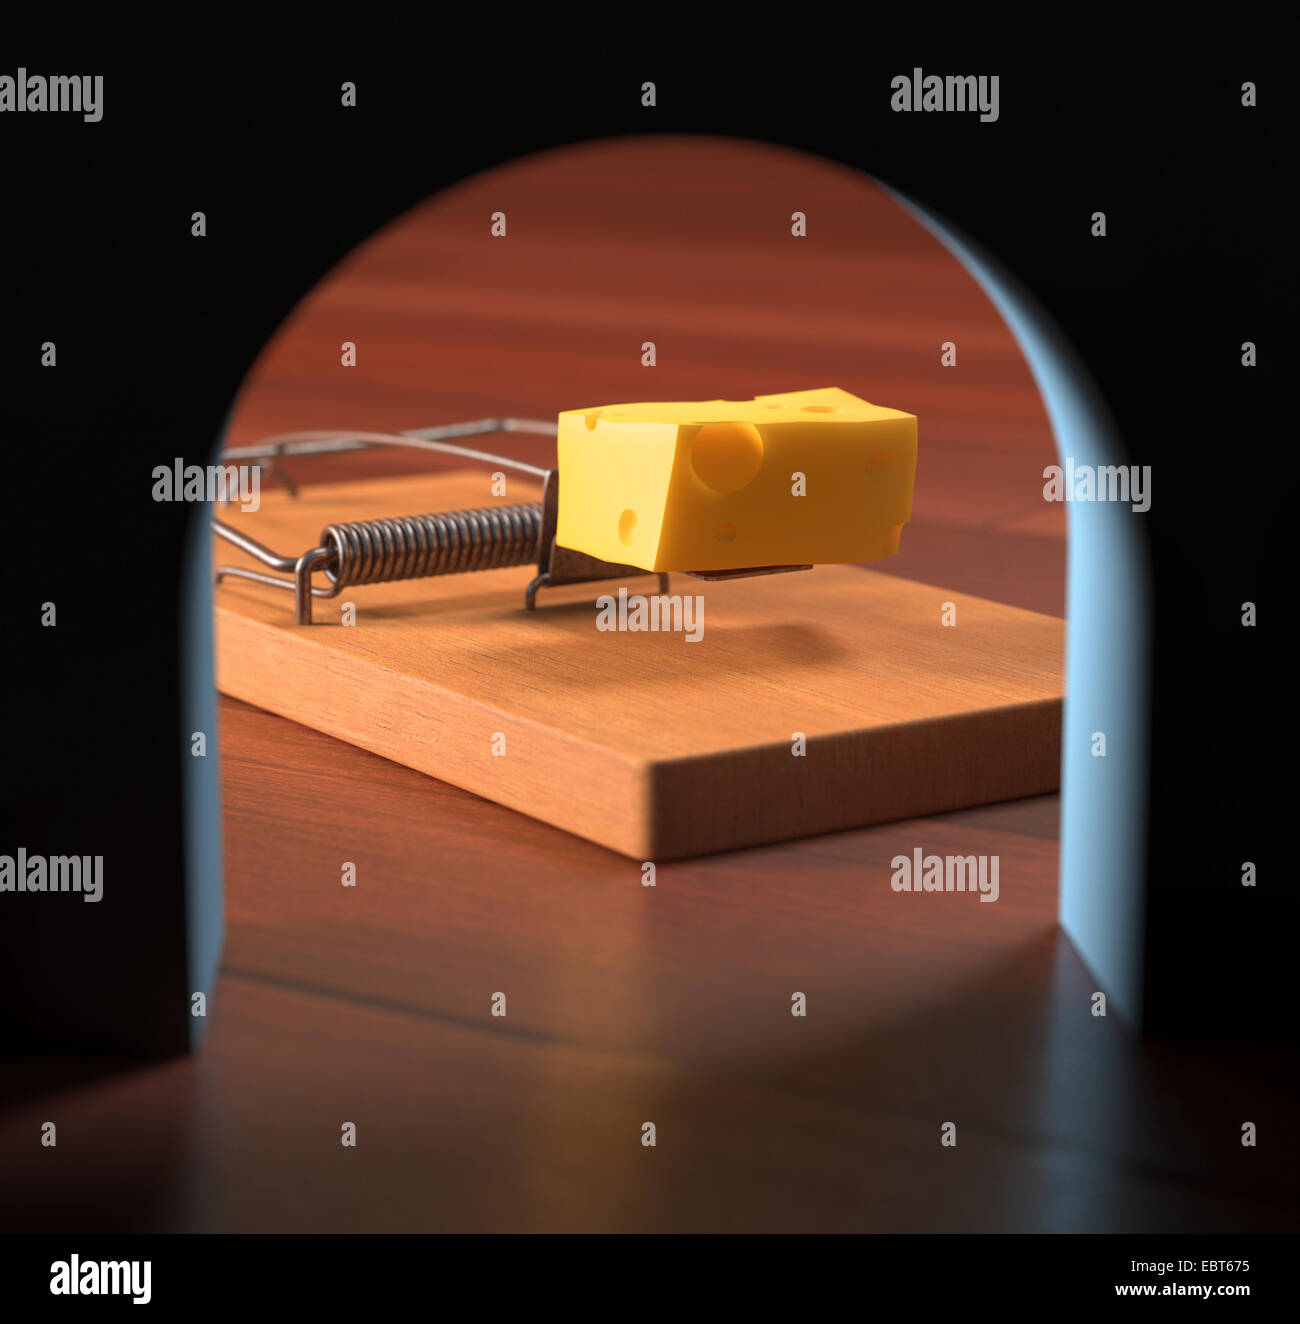 Looking from the hole, the mousetrap with cheese across the wall. - Stock Image